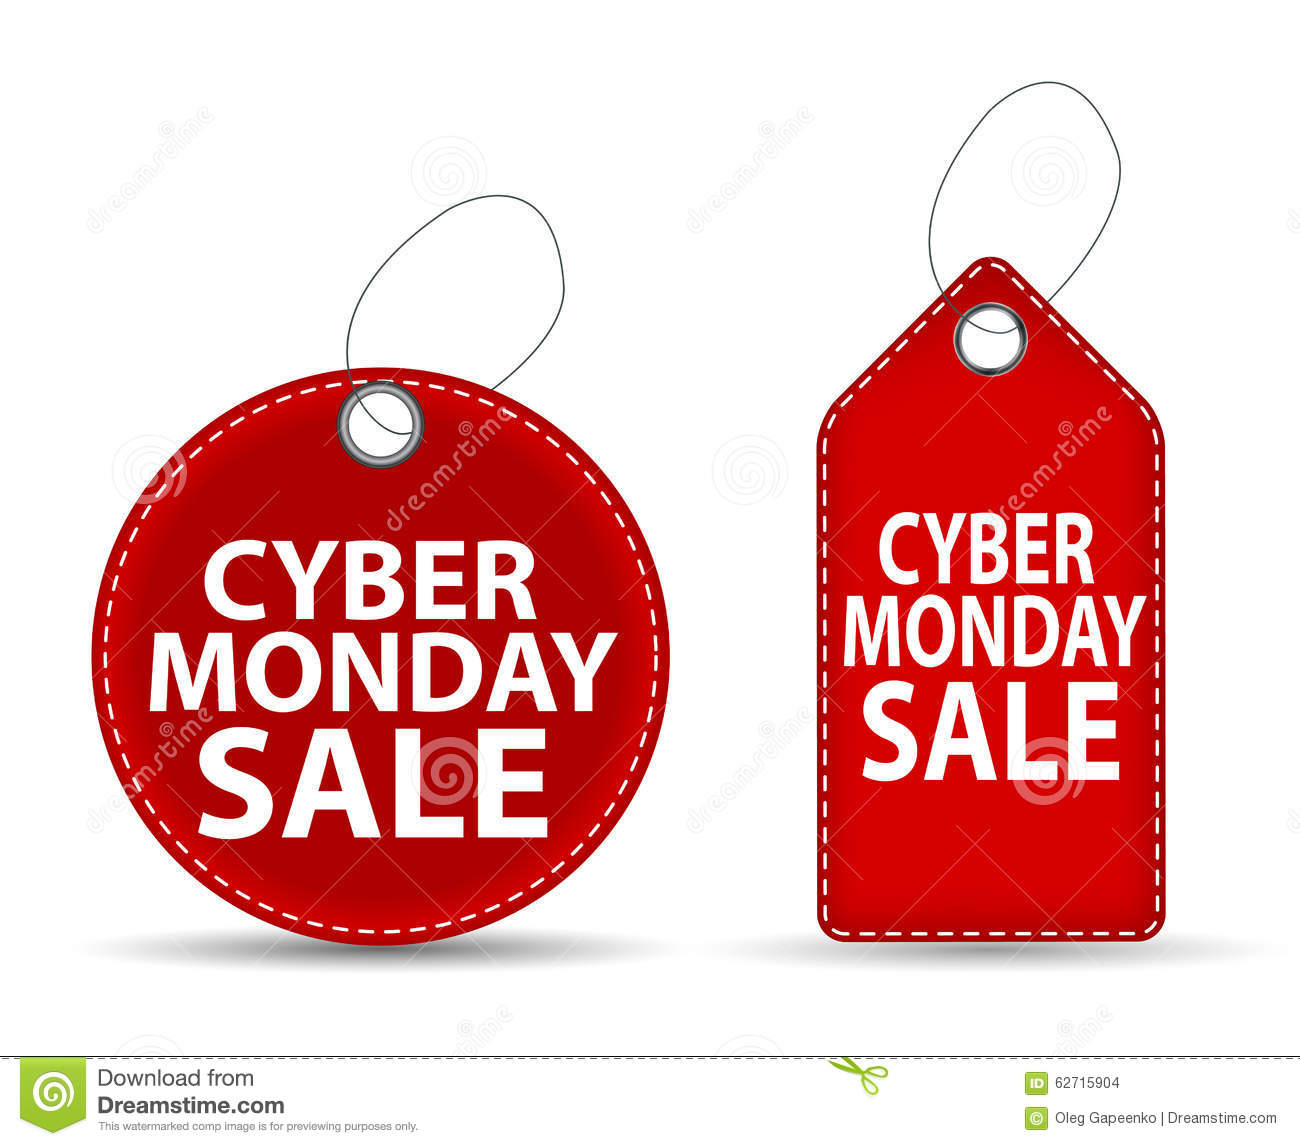 Cyber Monday SALE Label Vector Illustration Stock Vector